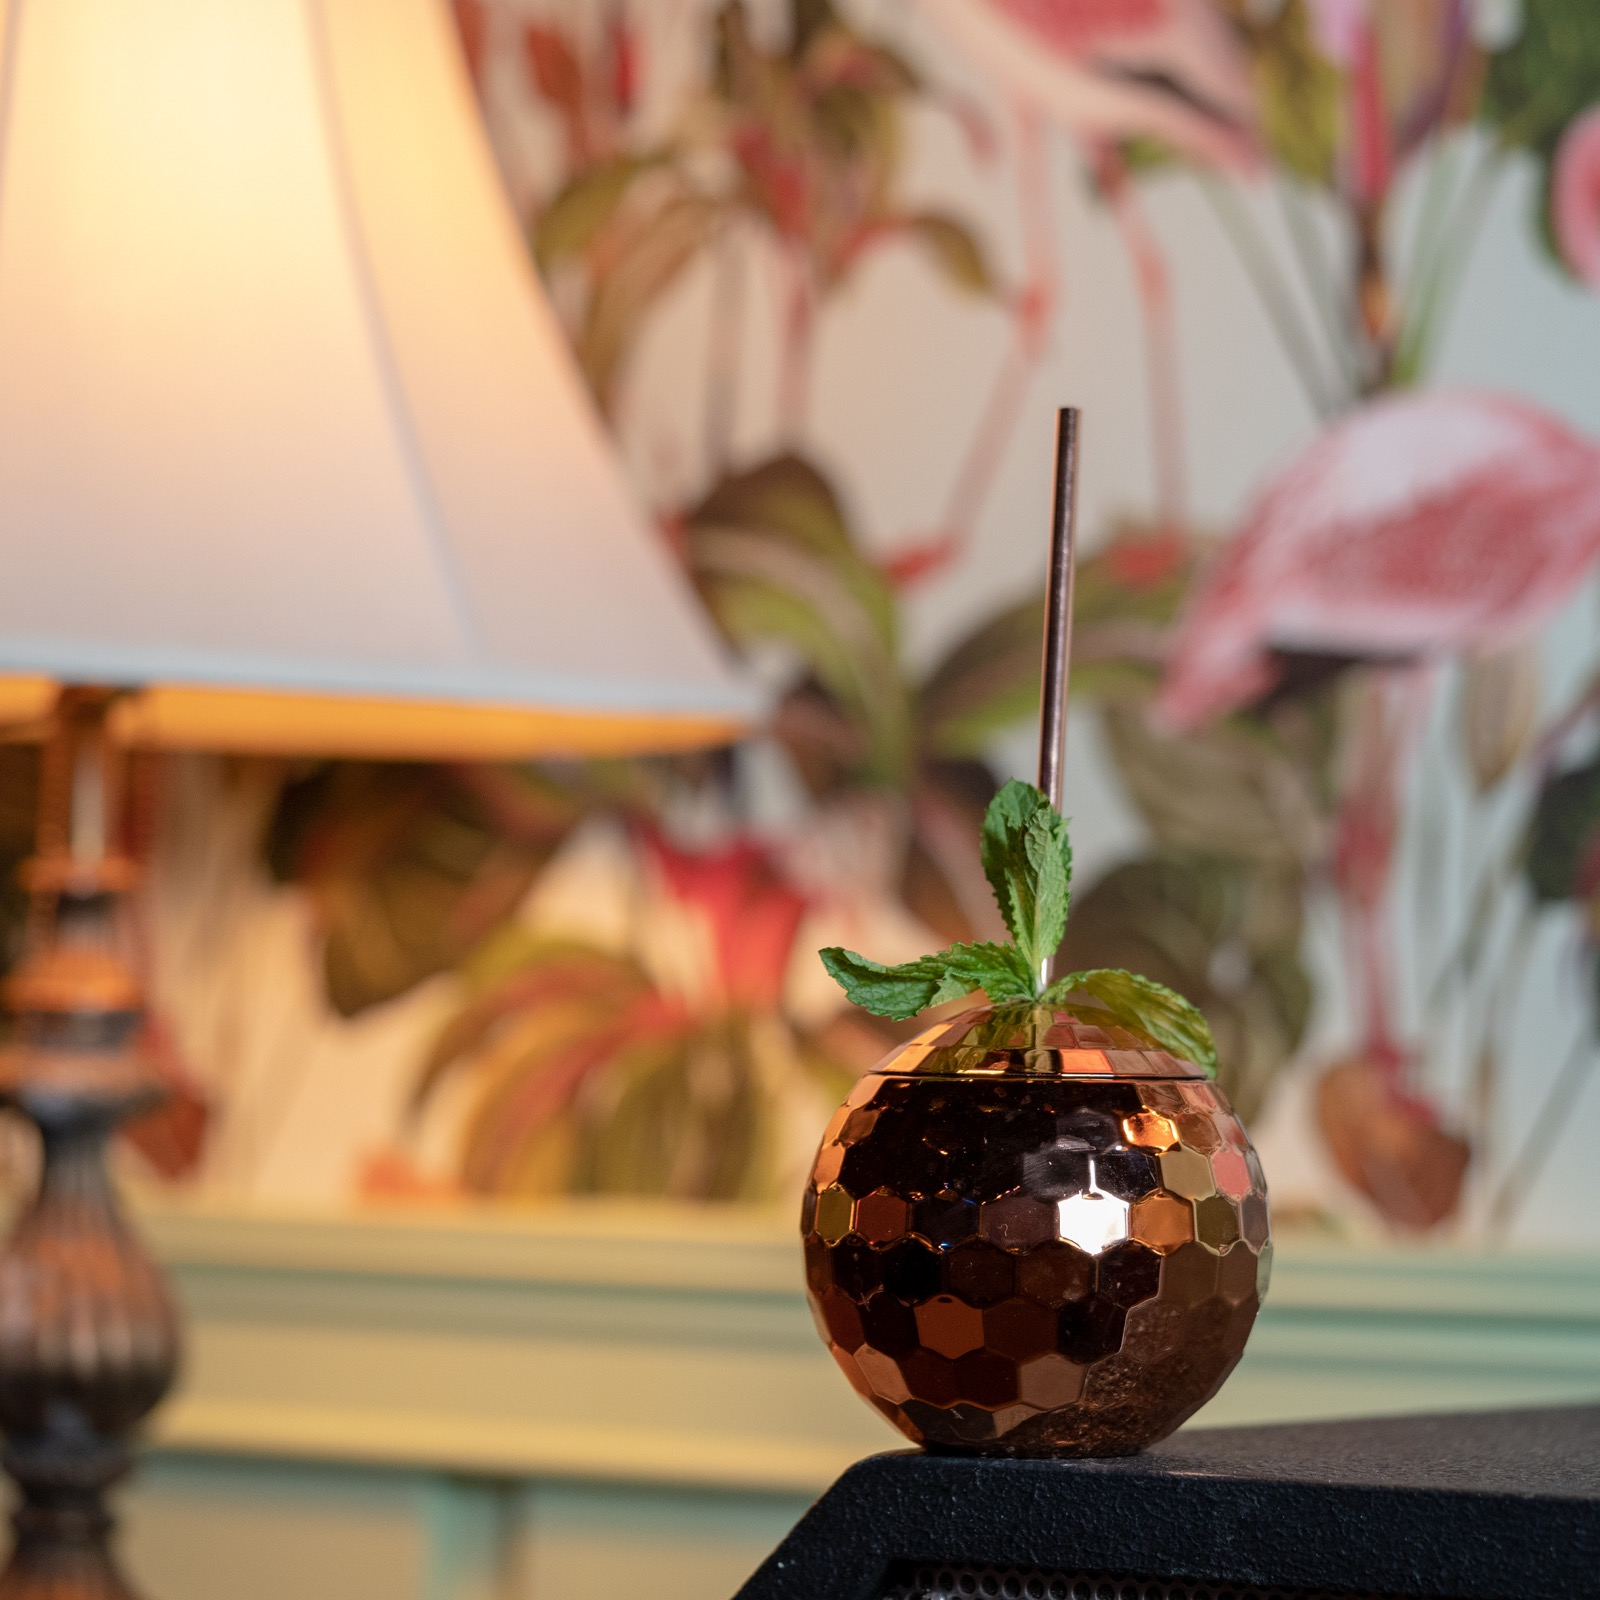 The Kitschy Cocktail Vessels That Make Drinking a Downright Delight